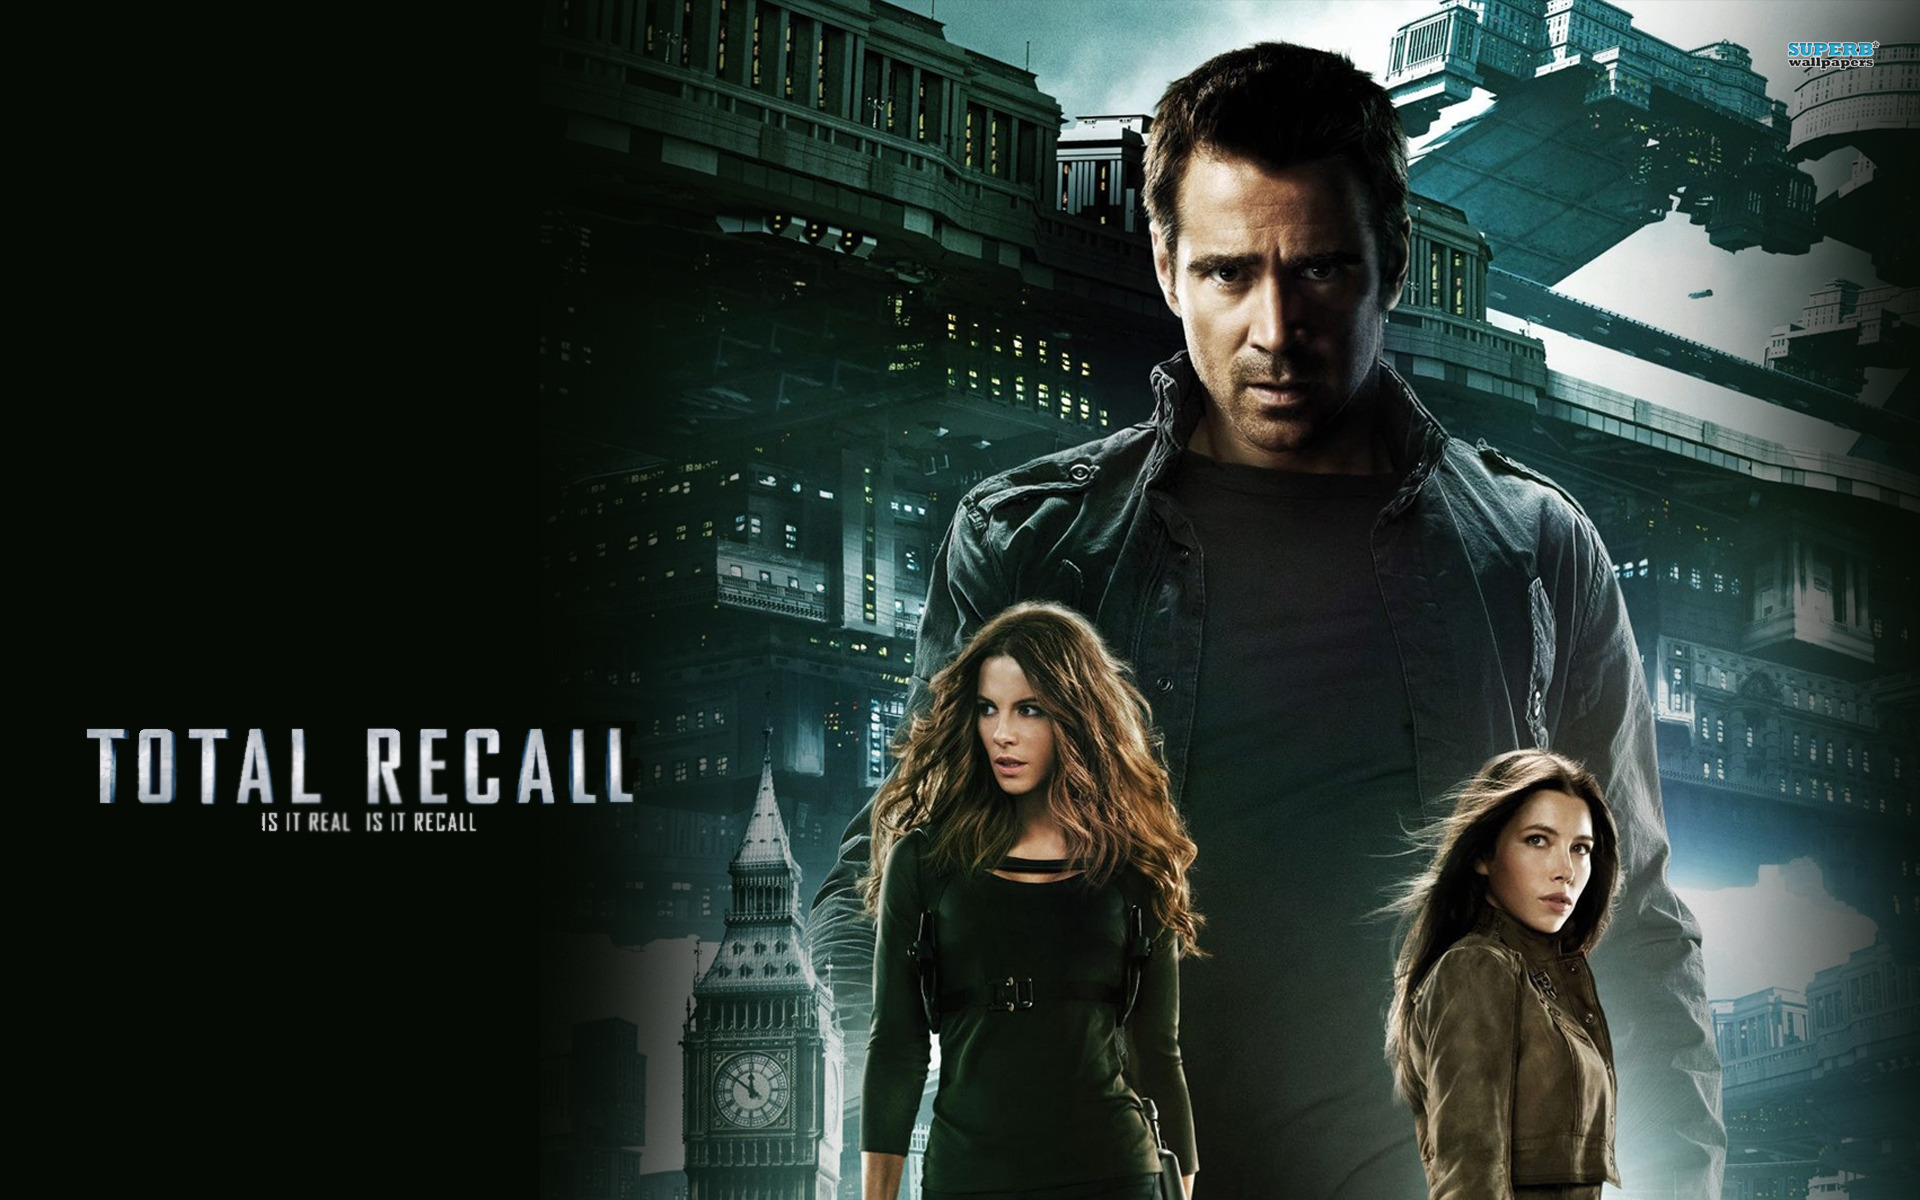 total recall 2012 full movie download in hindi 720p